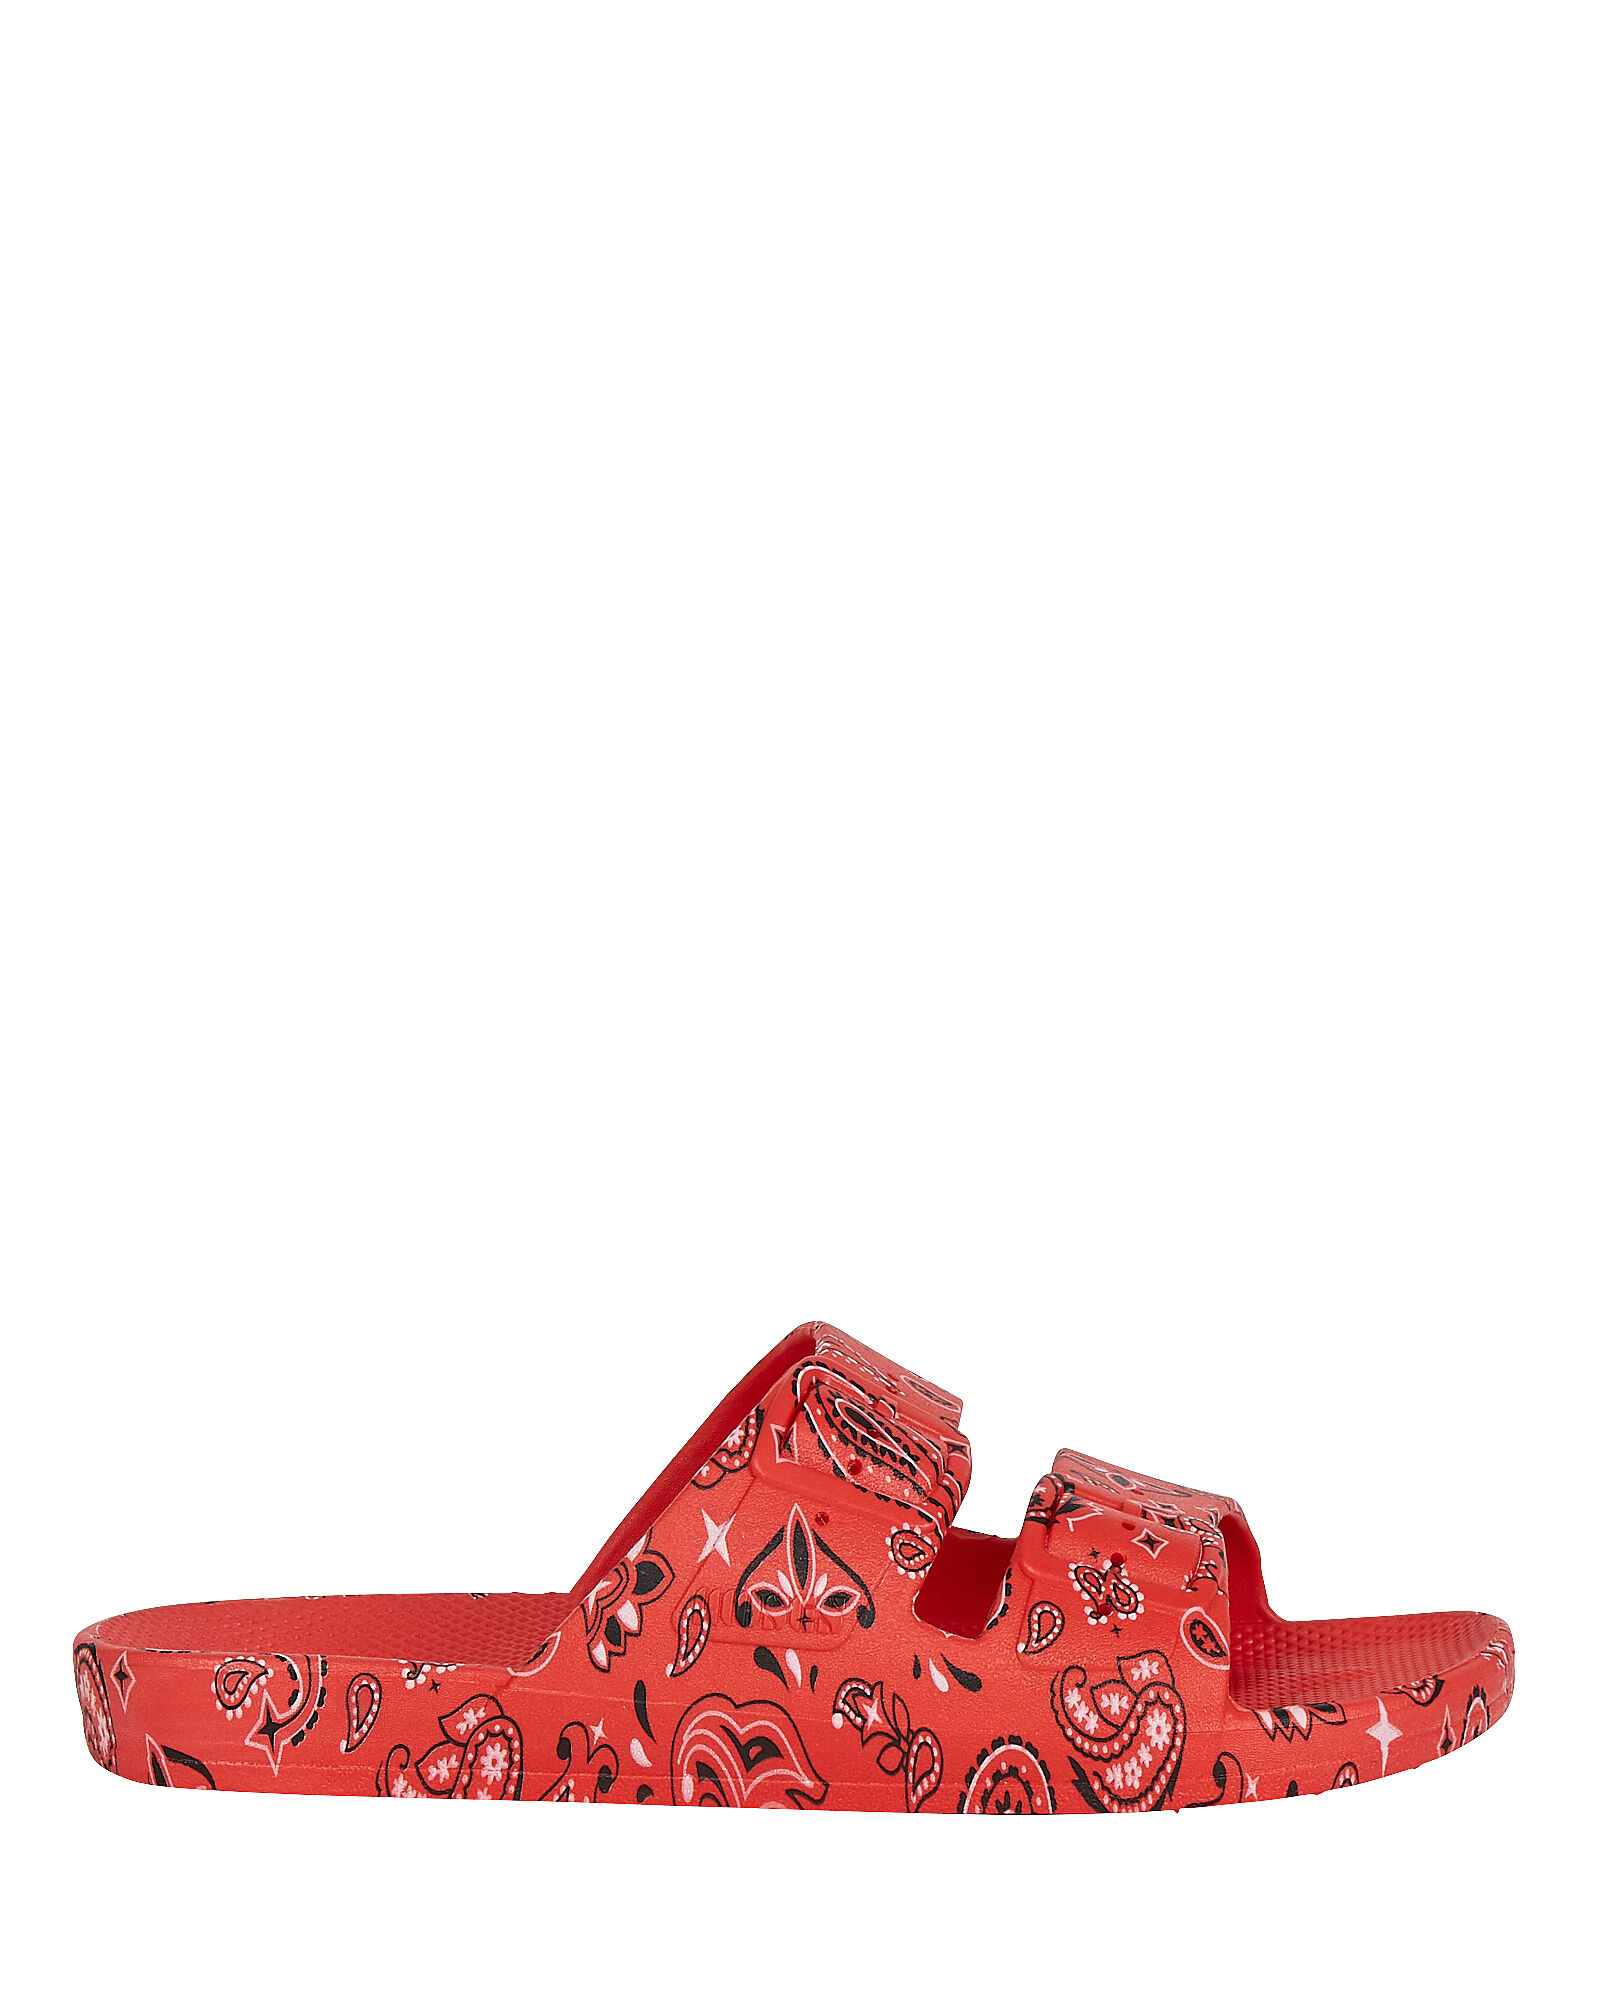 Bandana Printed Slide Sandals, RED, hi-res